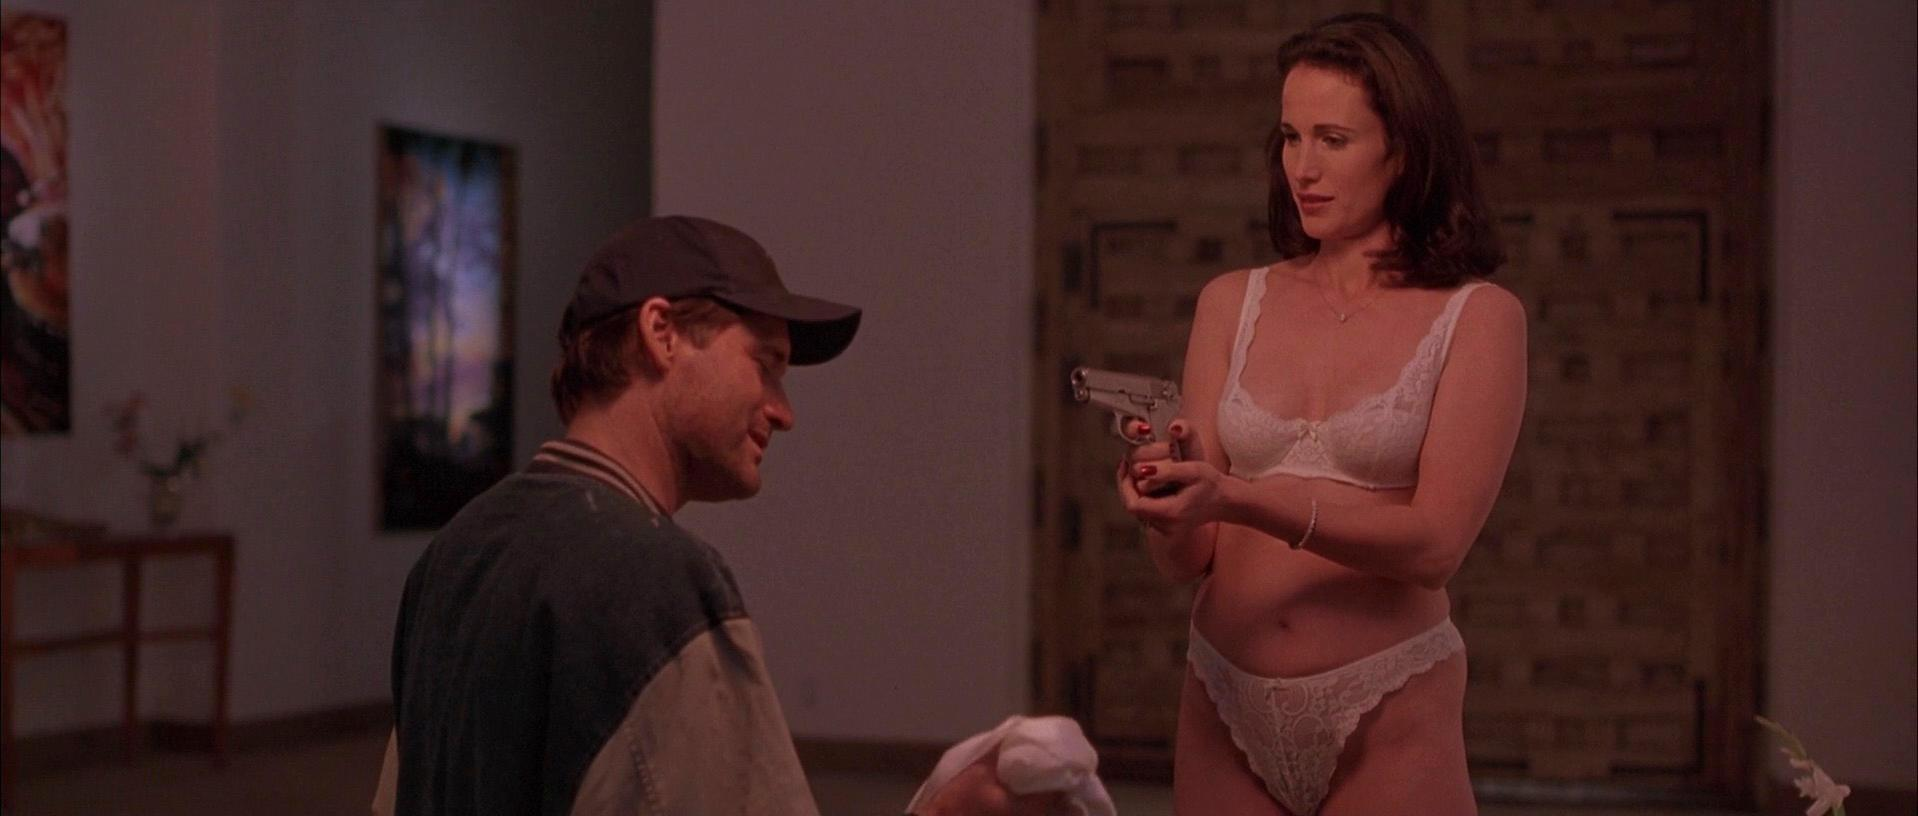 Andie MacDowell sexy - The End of Violence (1997)